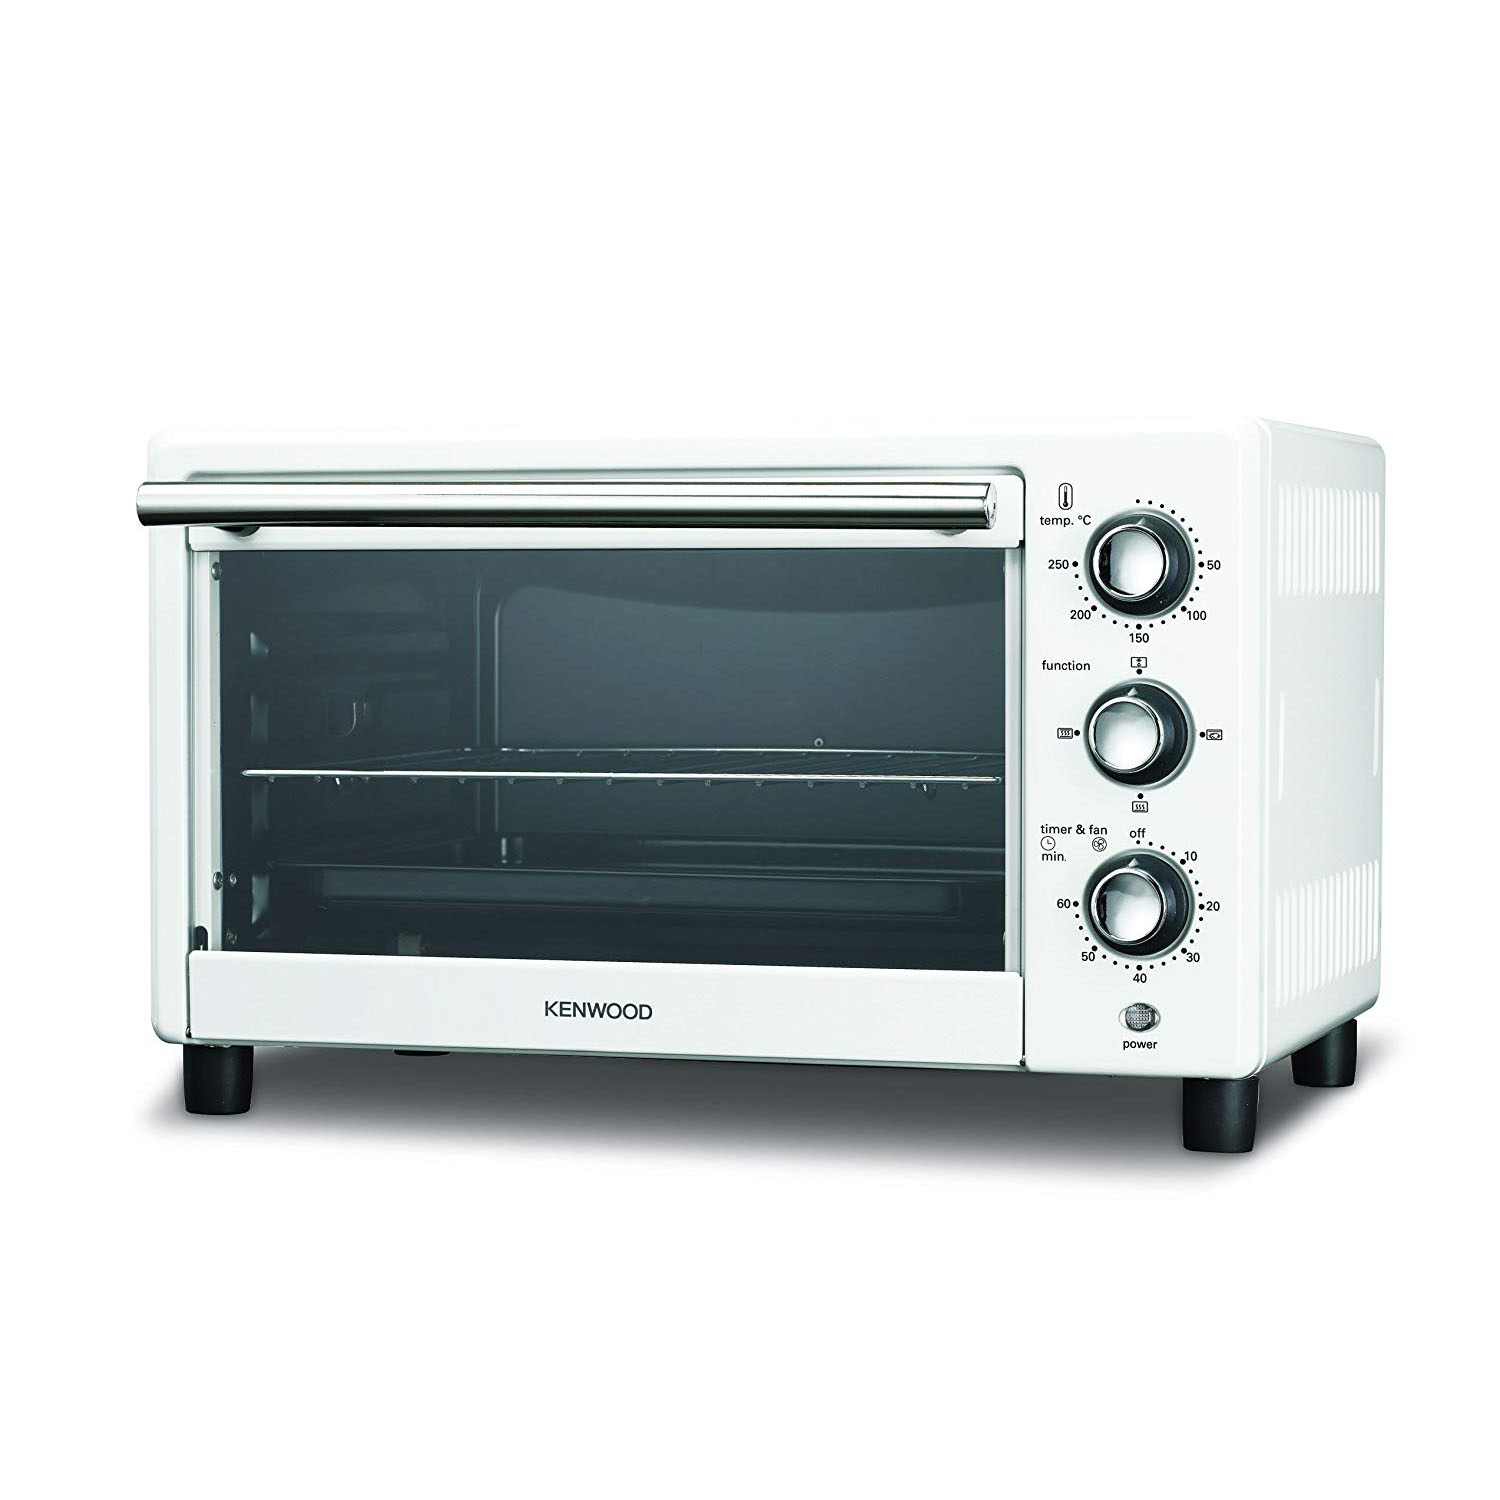 Kenwood MO740 Electric Oven 25L - White